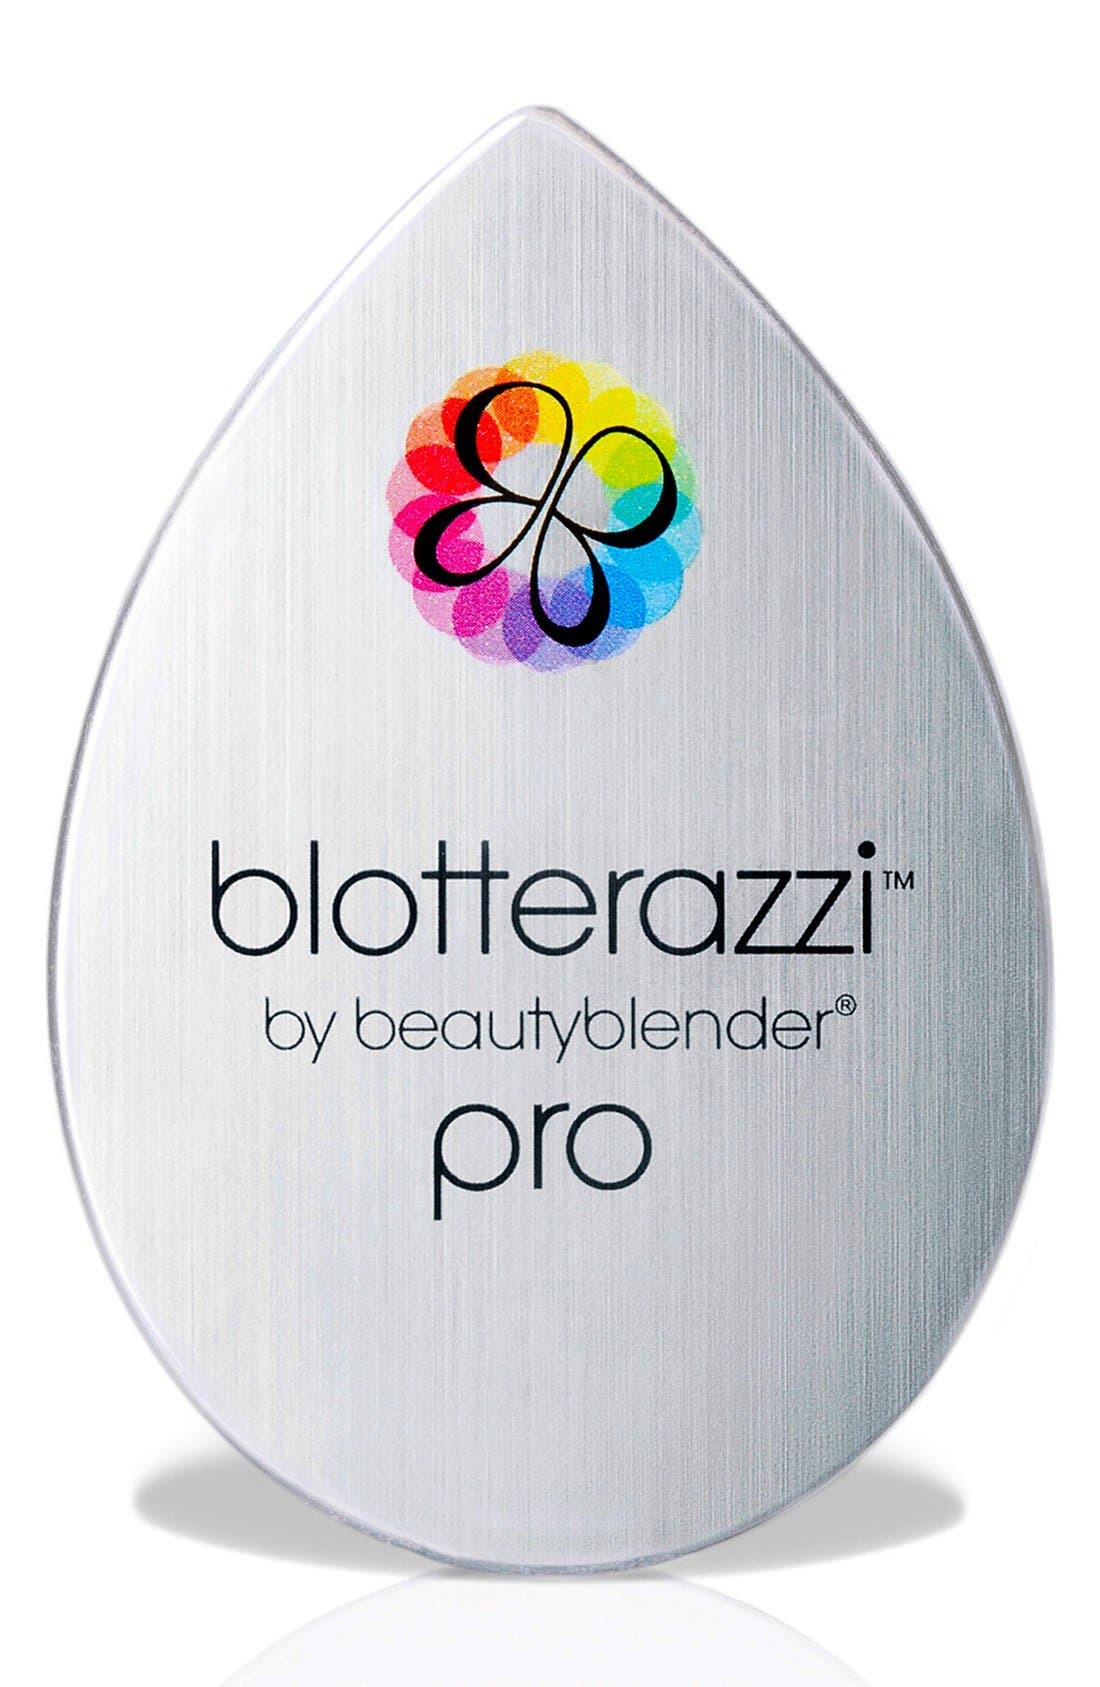 'blotterazzi pro' Blotting Sponge,                             Alternate thumbnail 6, color,